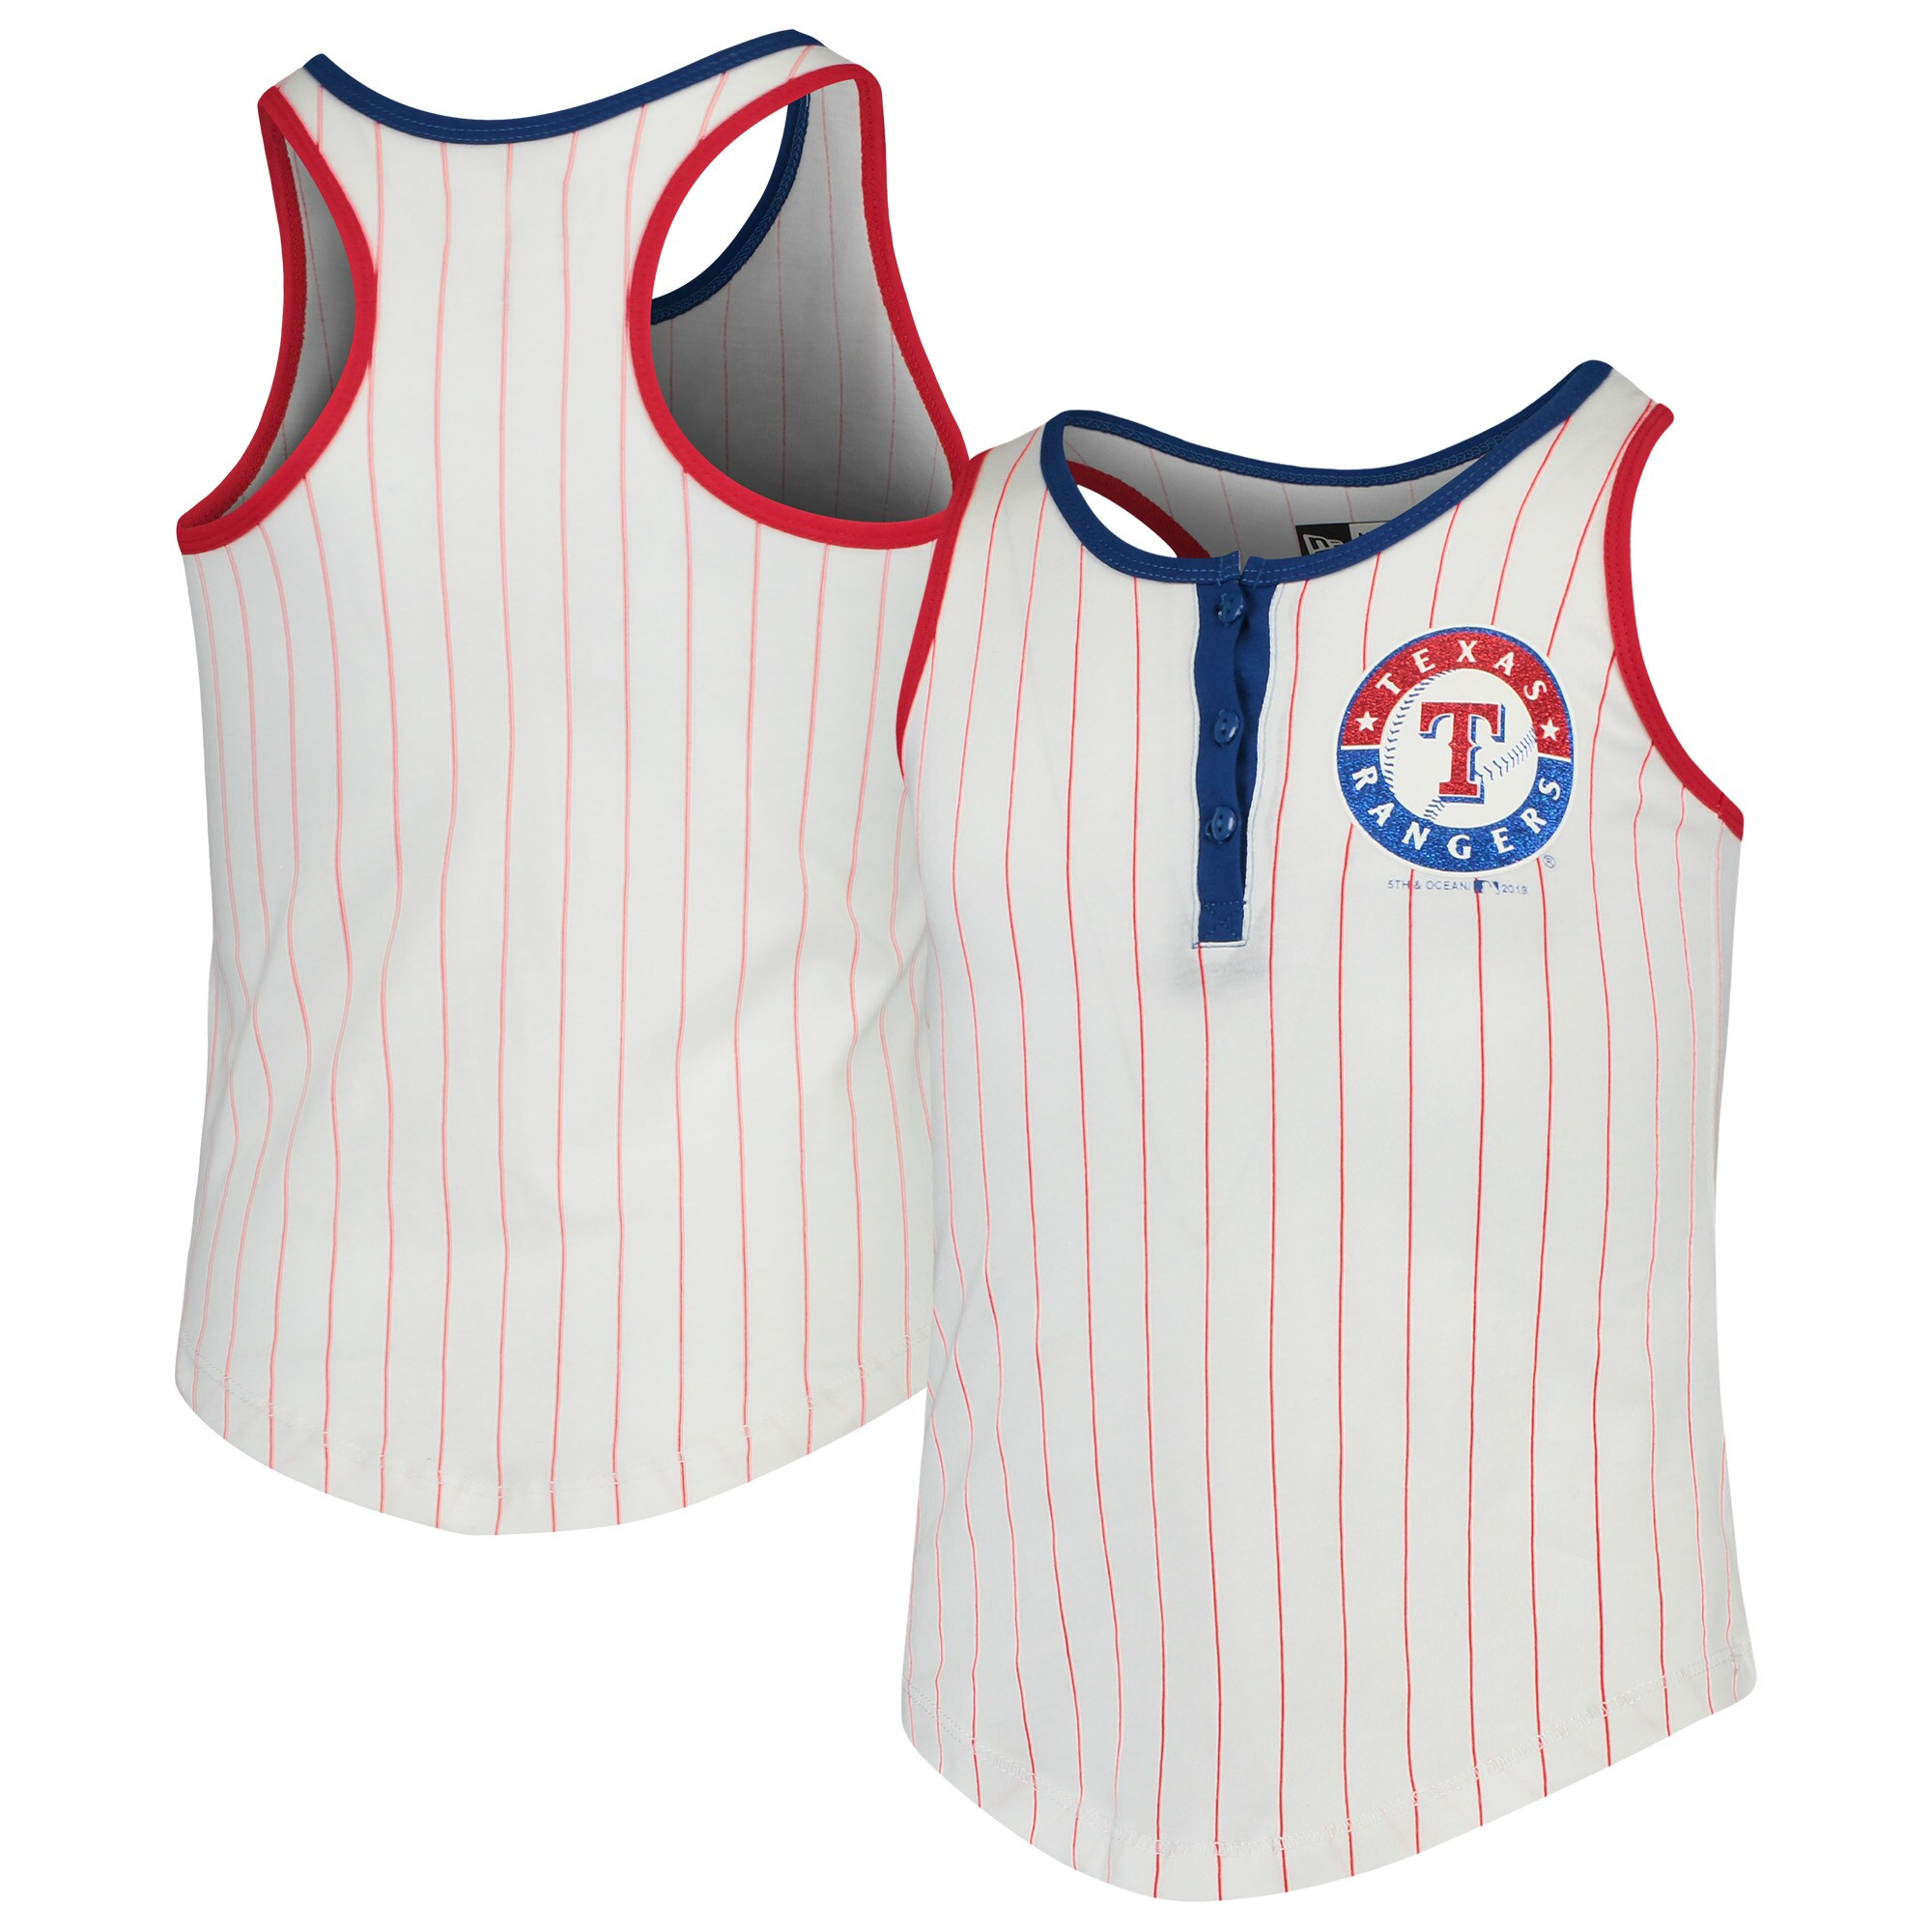 Texas Rangers New Era Girls Youth Pinstripe Jersey Racerback Tank Top - White/Red